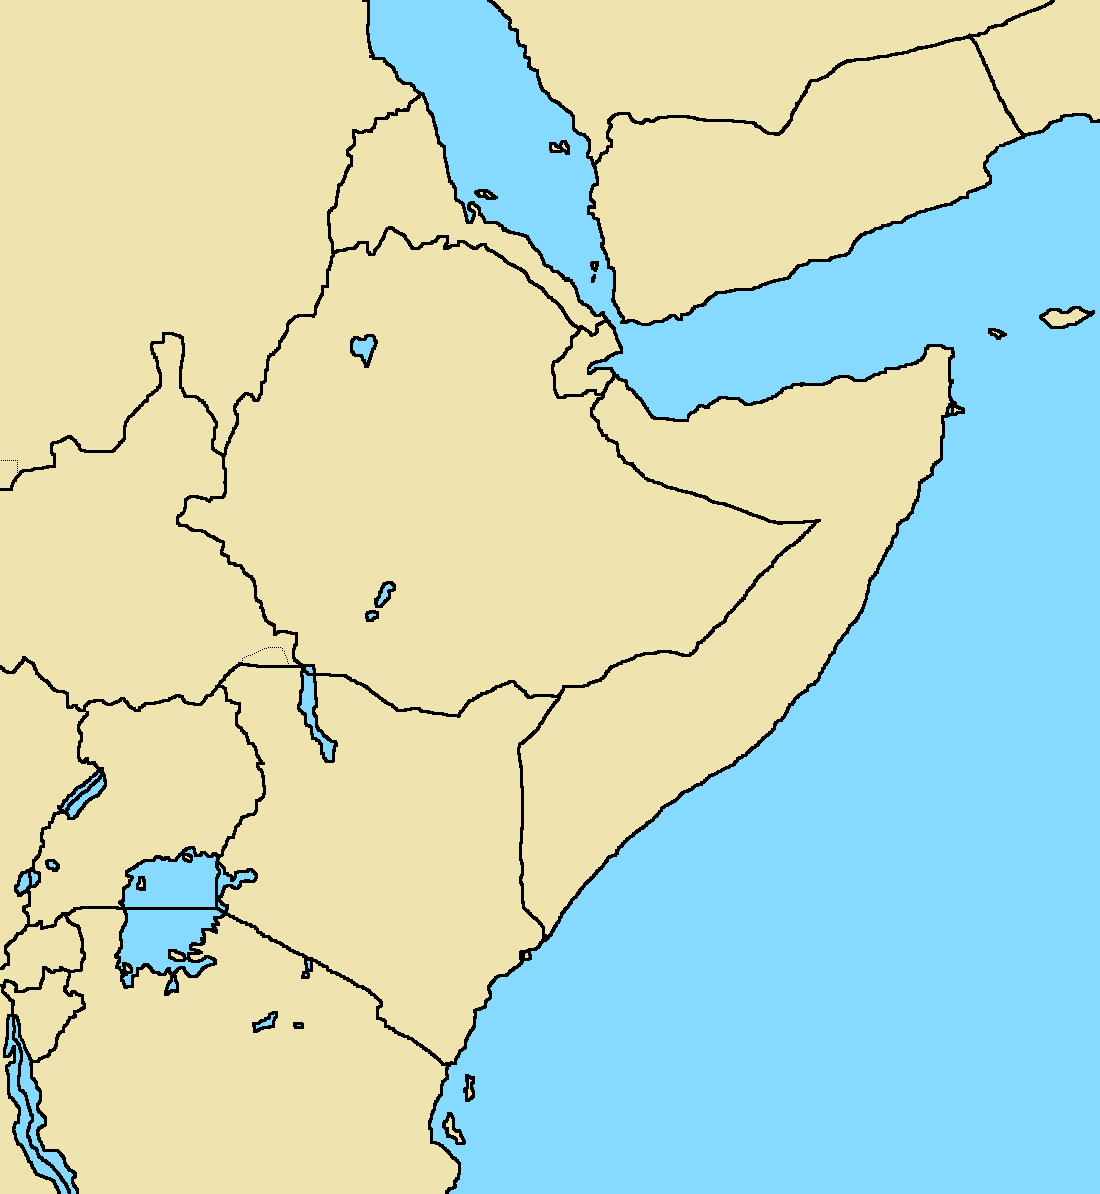 Blank map of African horn with modern borders by